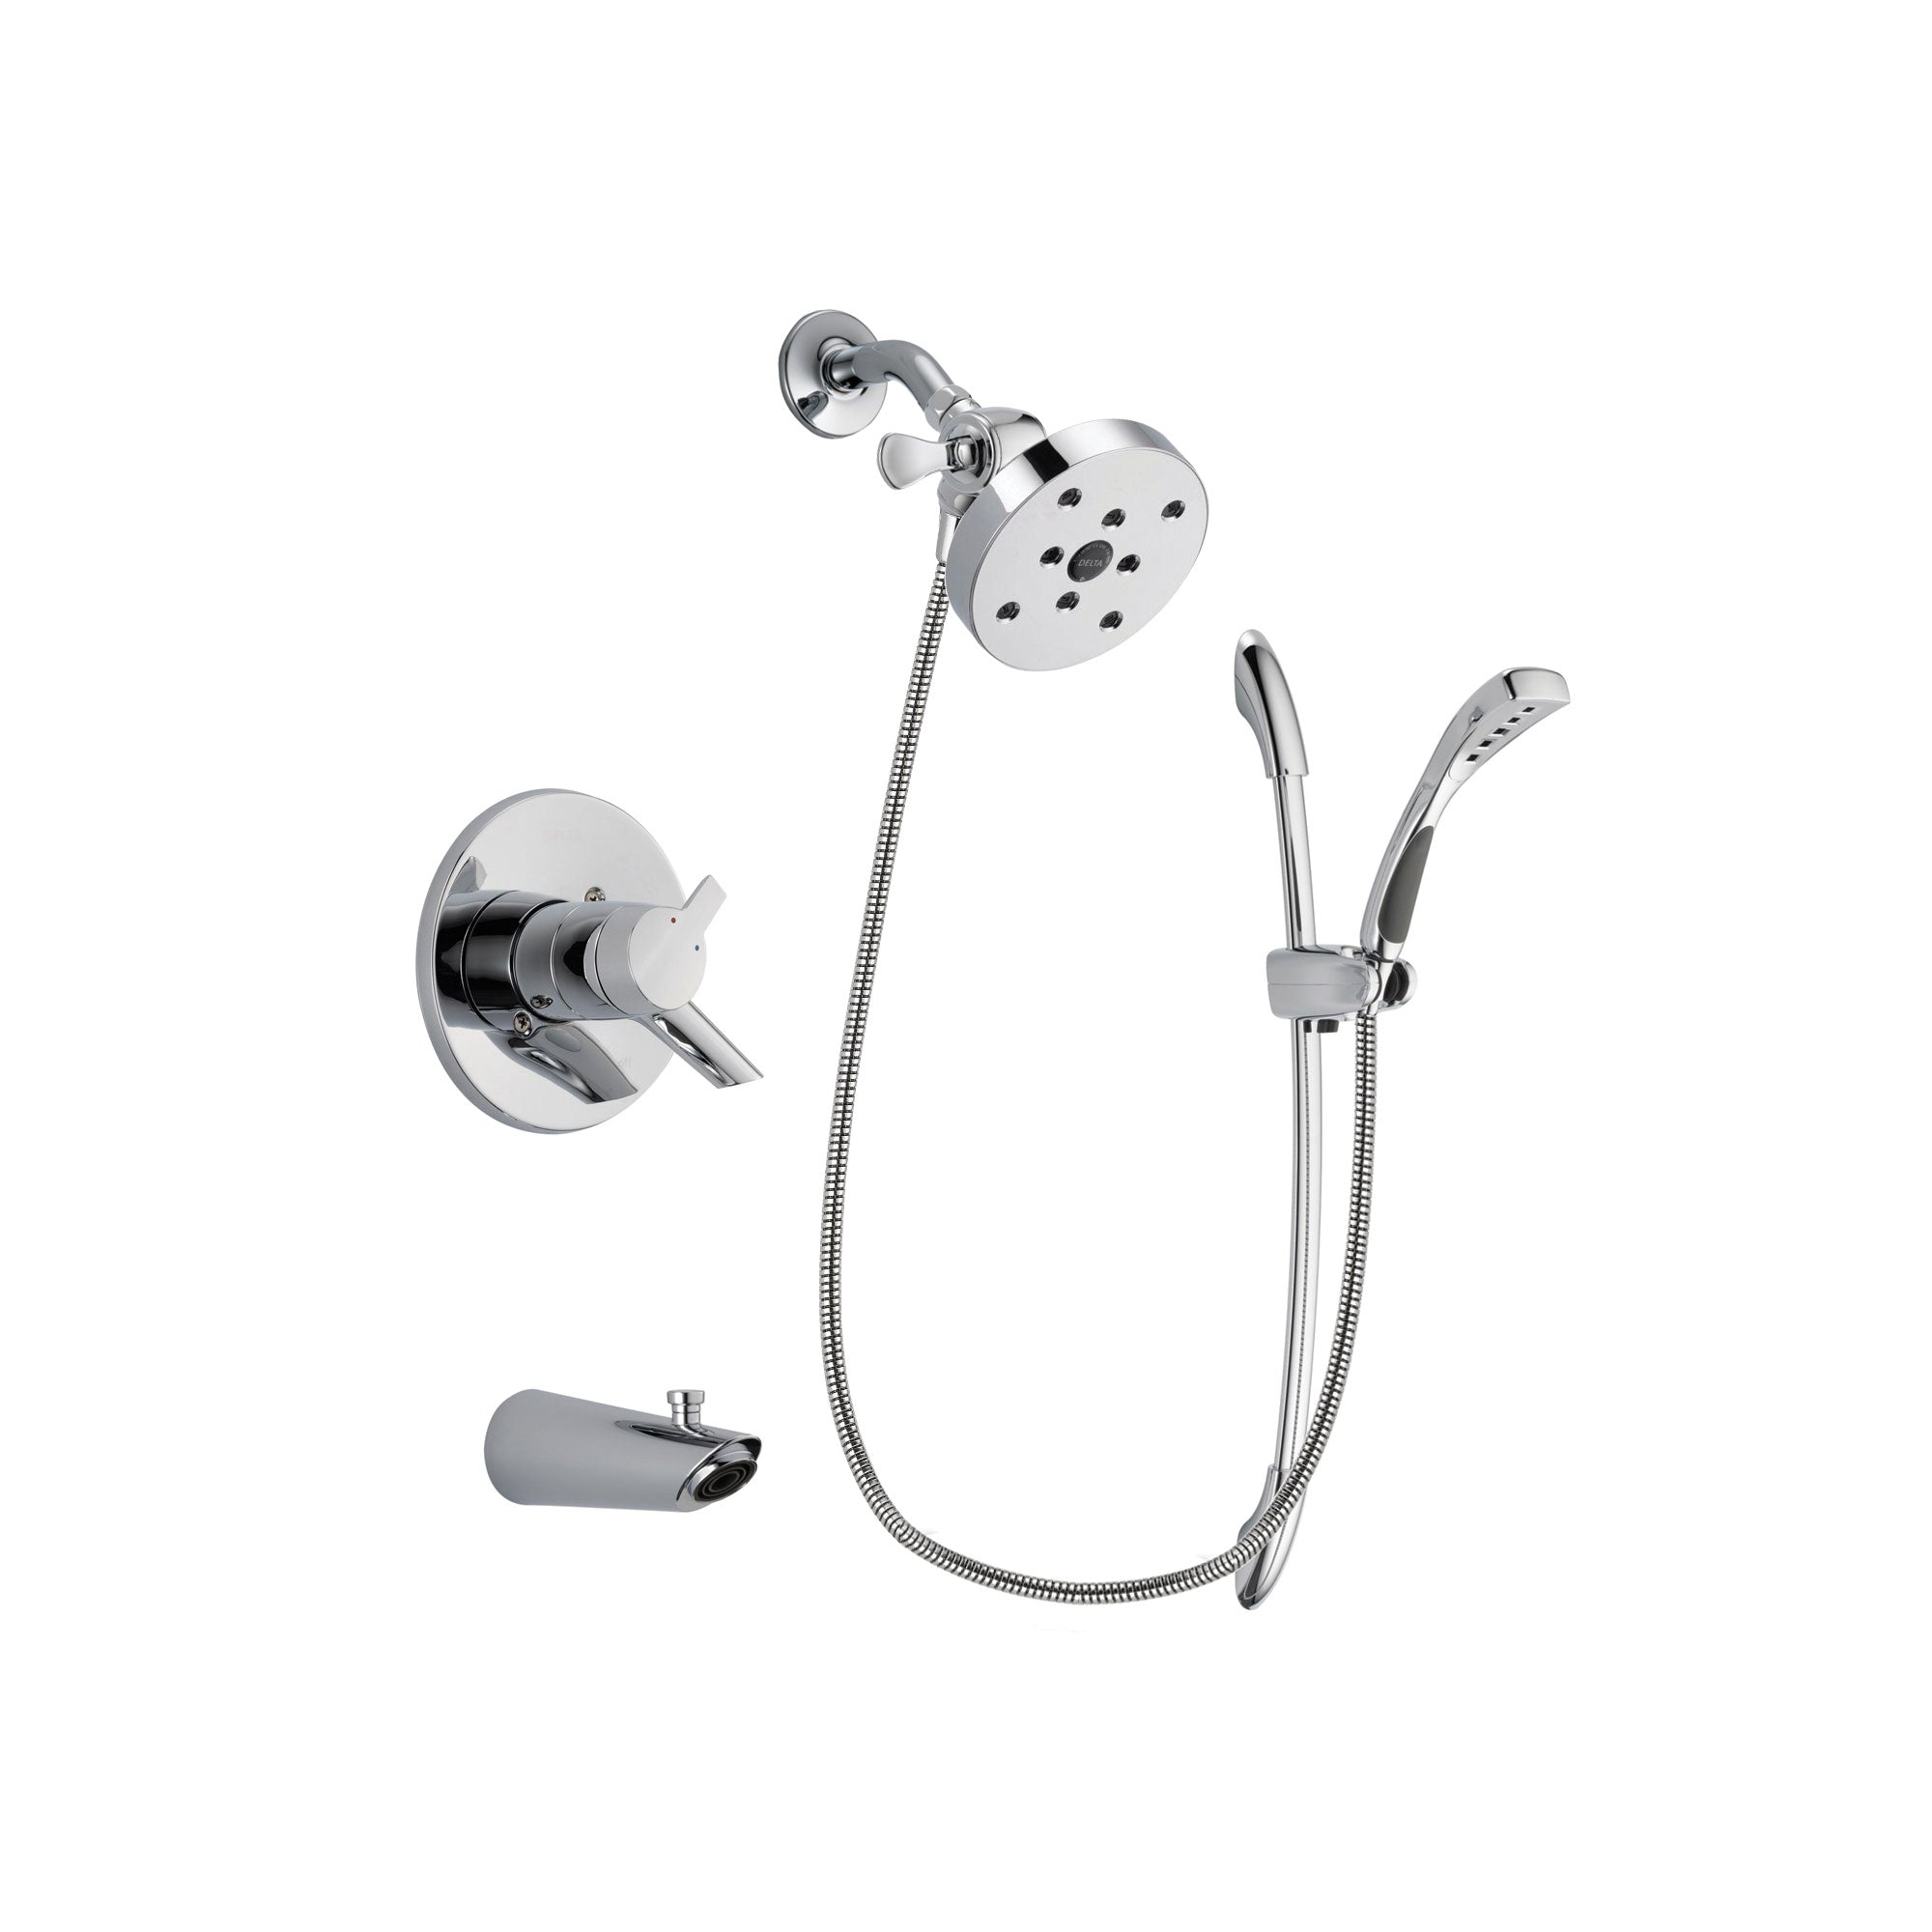 Delta Compel Chrome Finish Dual Control Tub and Shower Faucet System Package with 5-1/2 inch Shower Head and Handheld Shower with Slide Bar Includes Rough-in Valve and Tub Spout DSP0551V